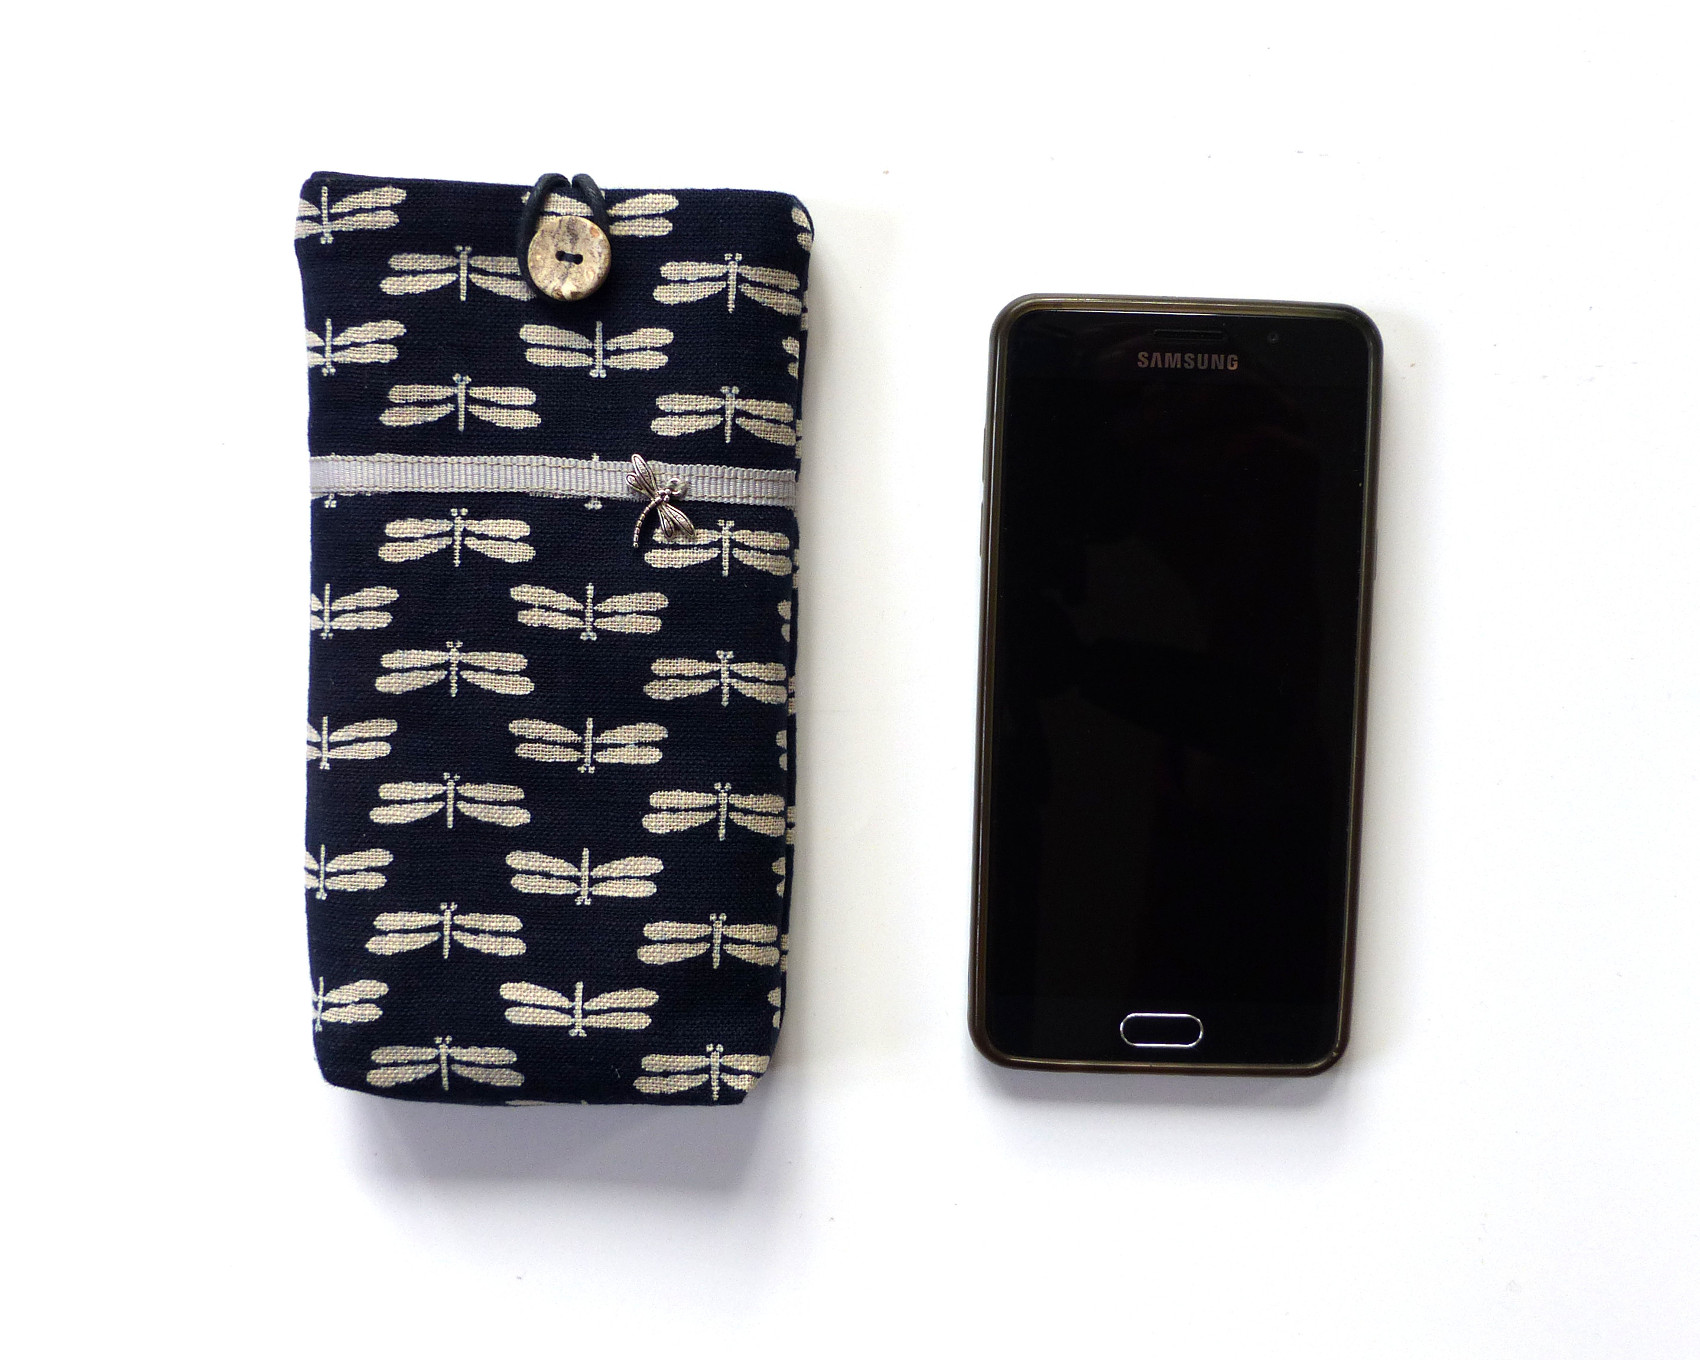 16a0d89ad soft case for mobile phone / smartphone, handmade with Japanese fabric, navy  / white